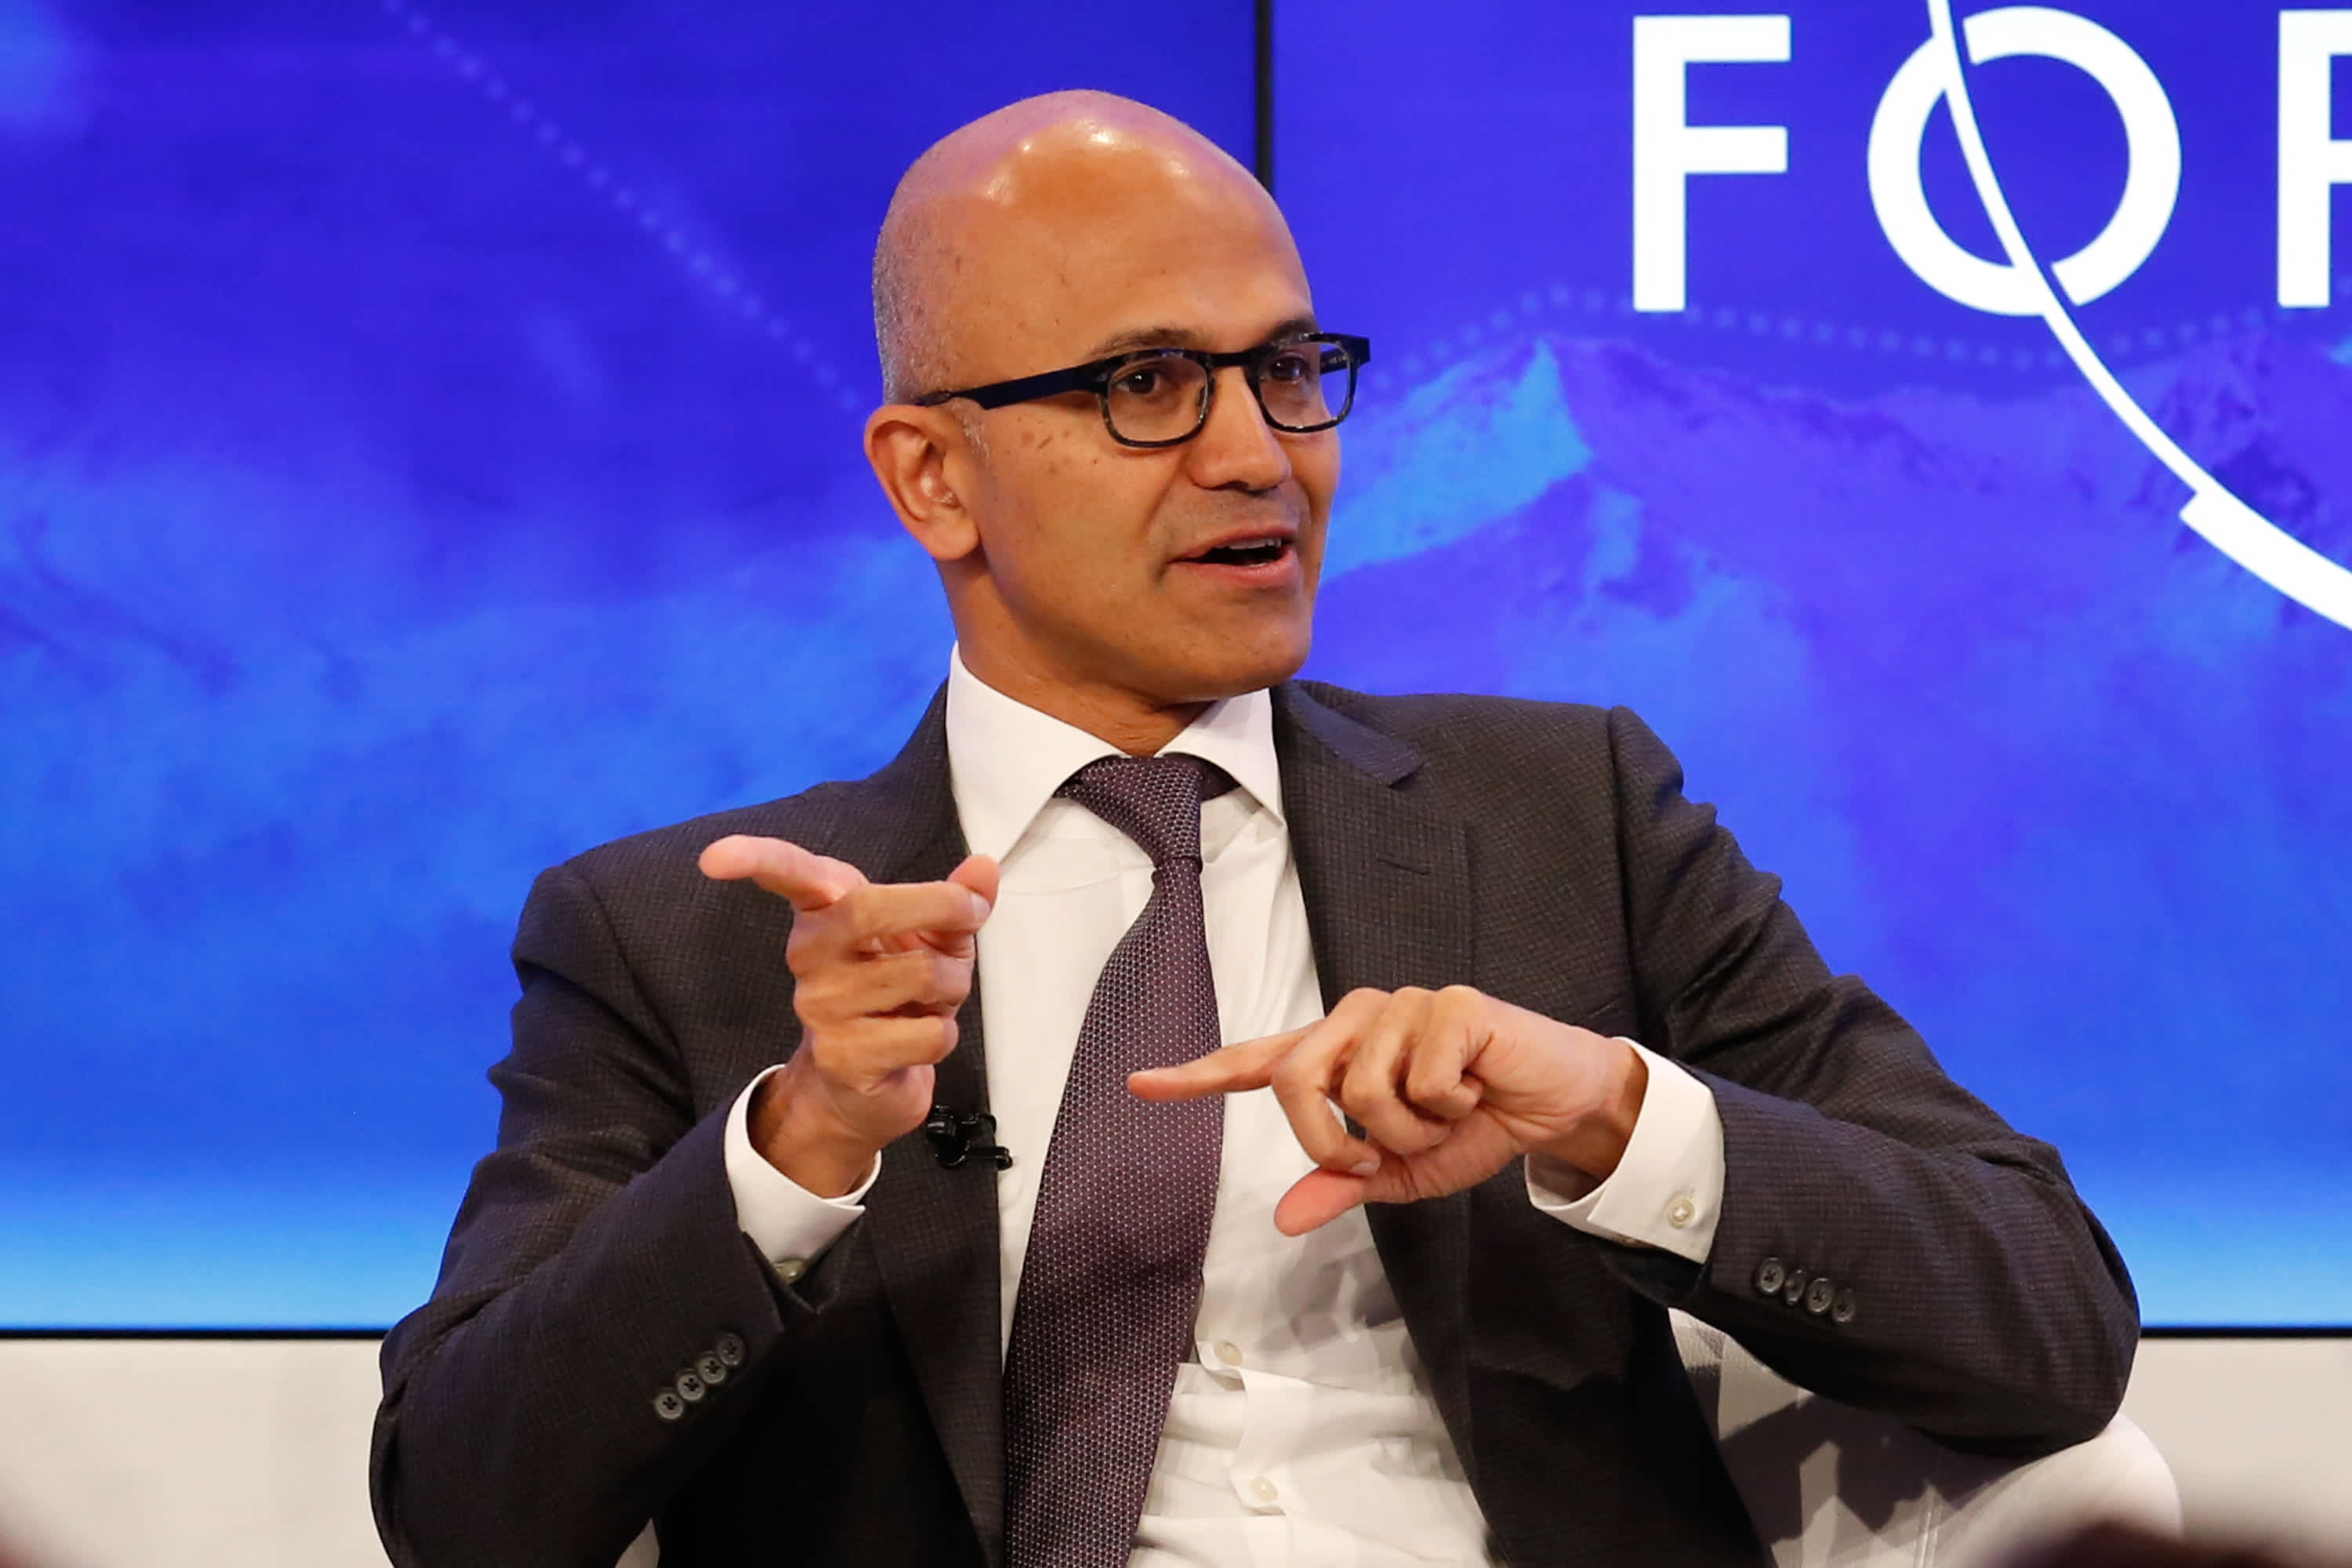 Microsoft launches e-commerce tools as Amazon rivalry intensifies